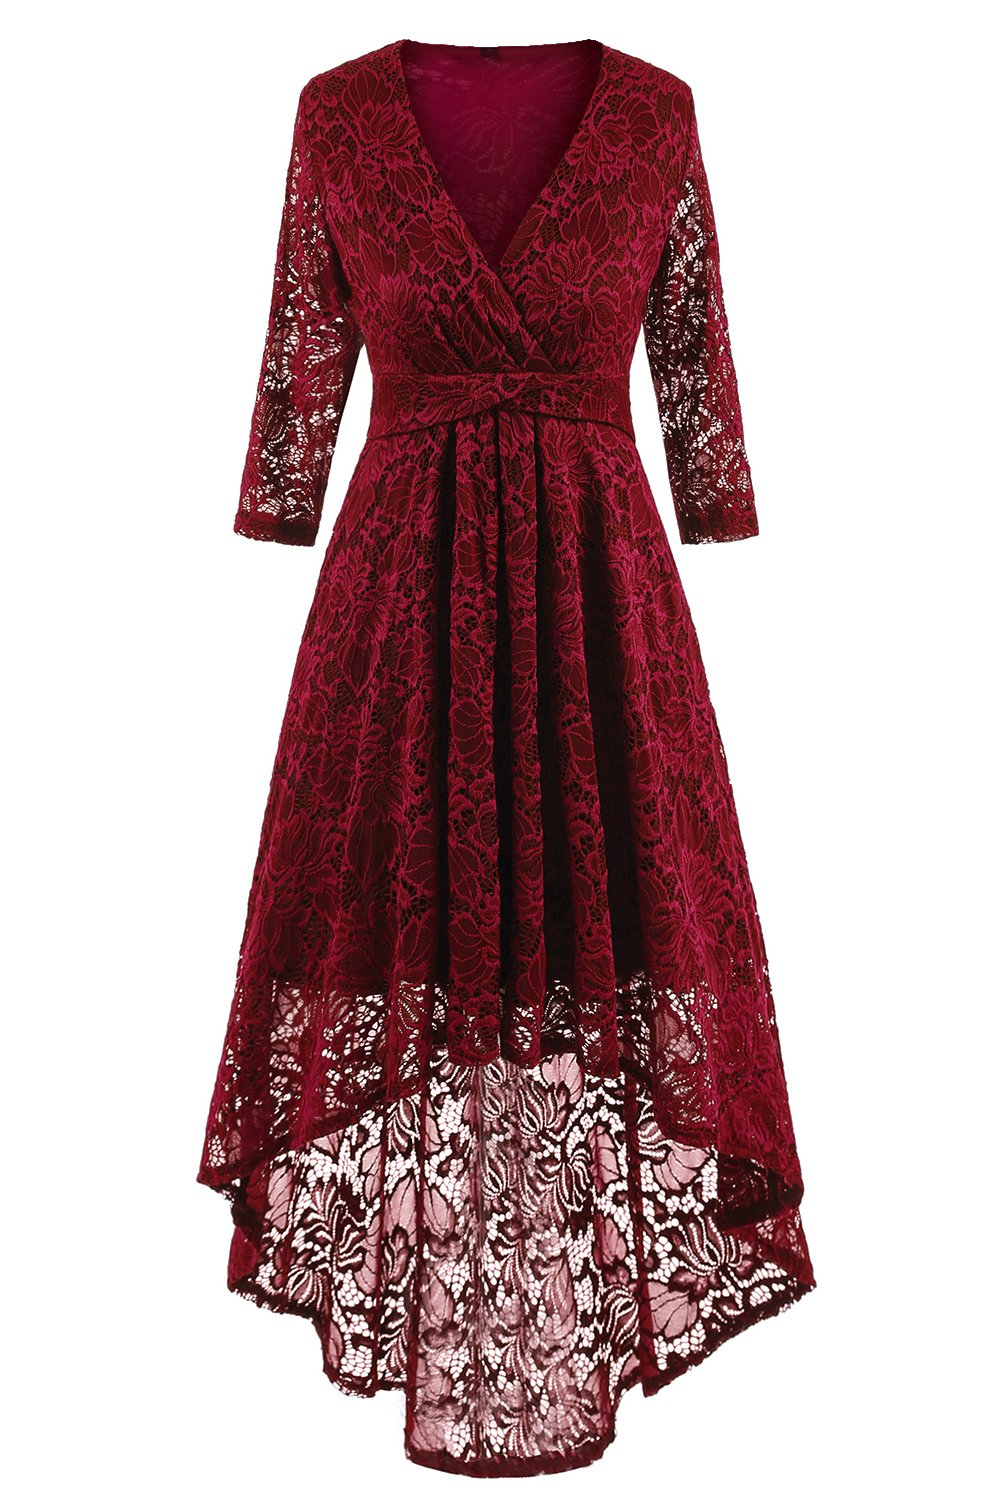 NALATI Women 1950s Vintage Deep V Neck High-low Hem Lace Cocktail Party Dress